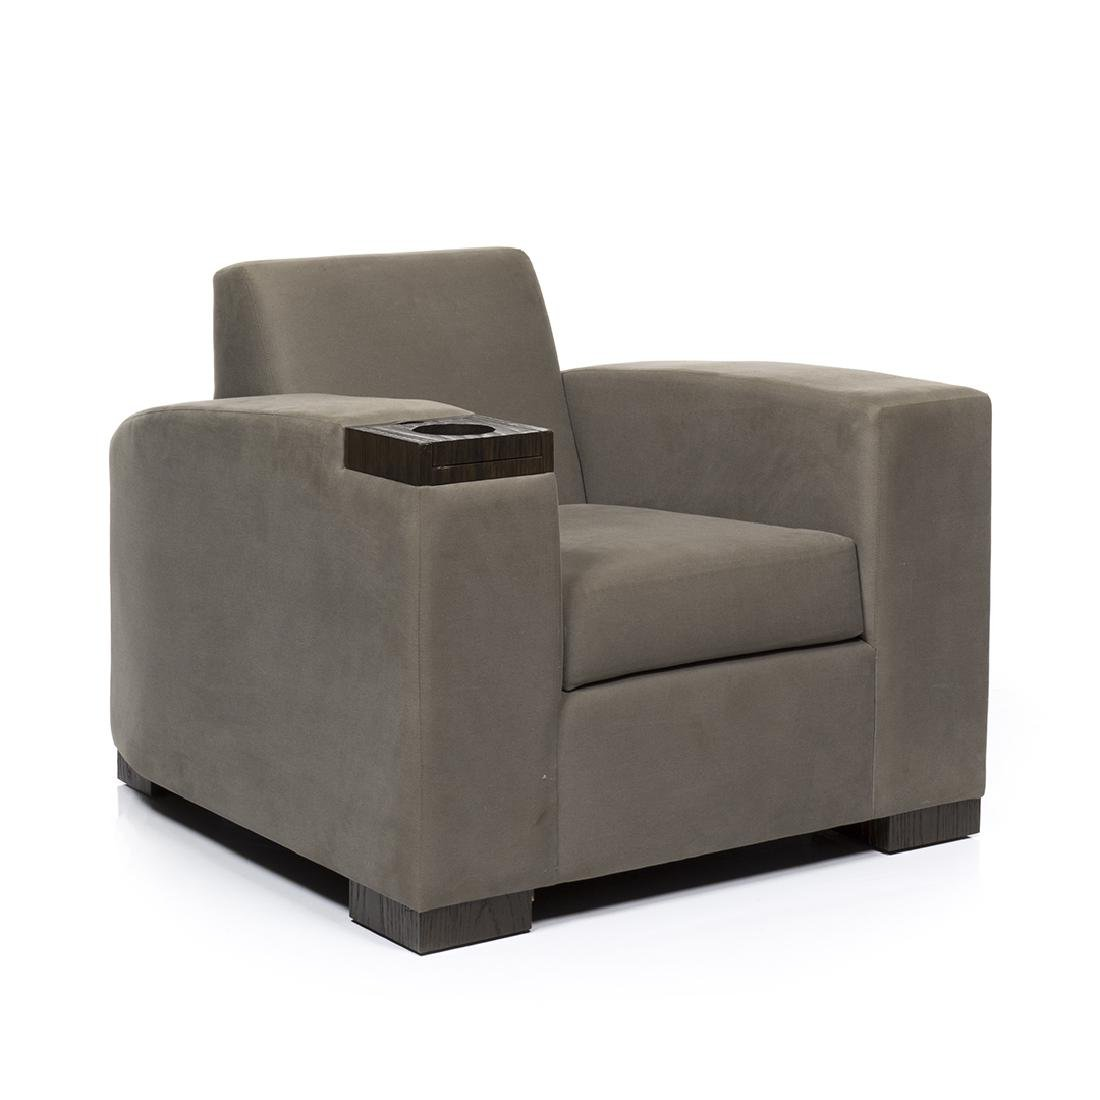 Blackman Cruz Screening Room Lounge Chair - 2